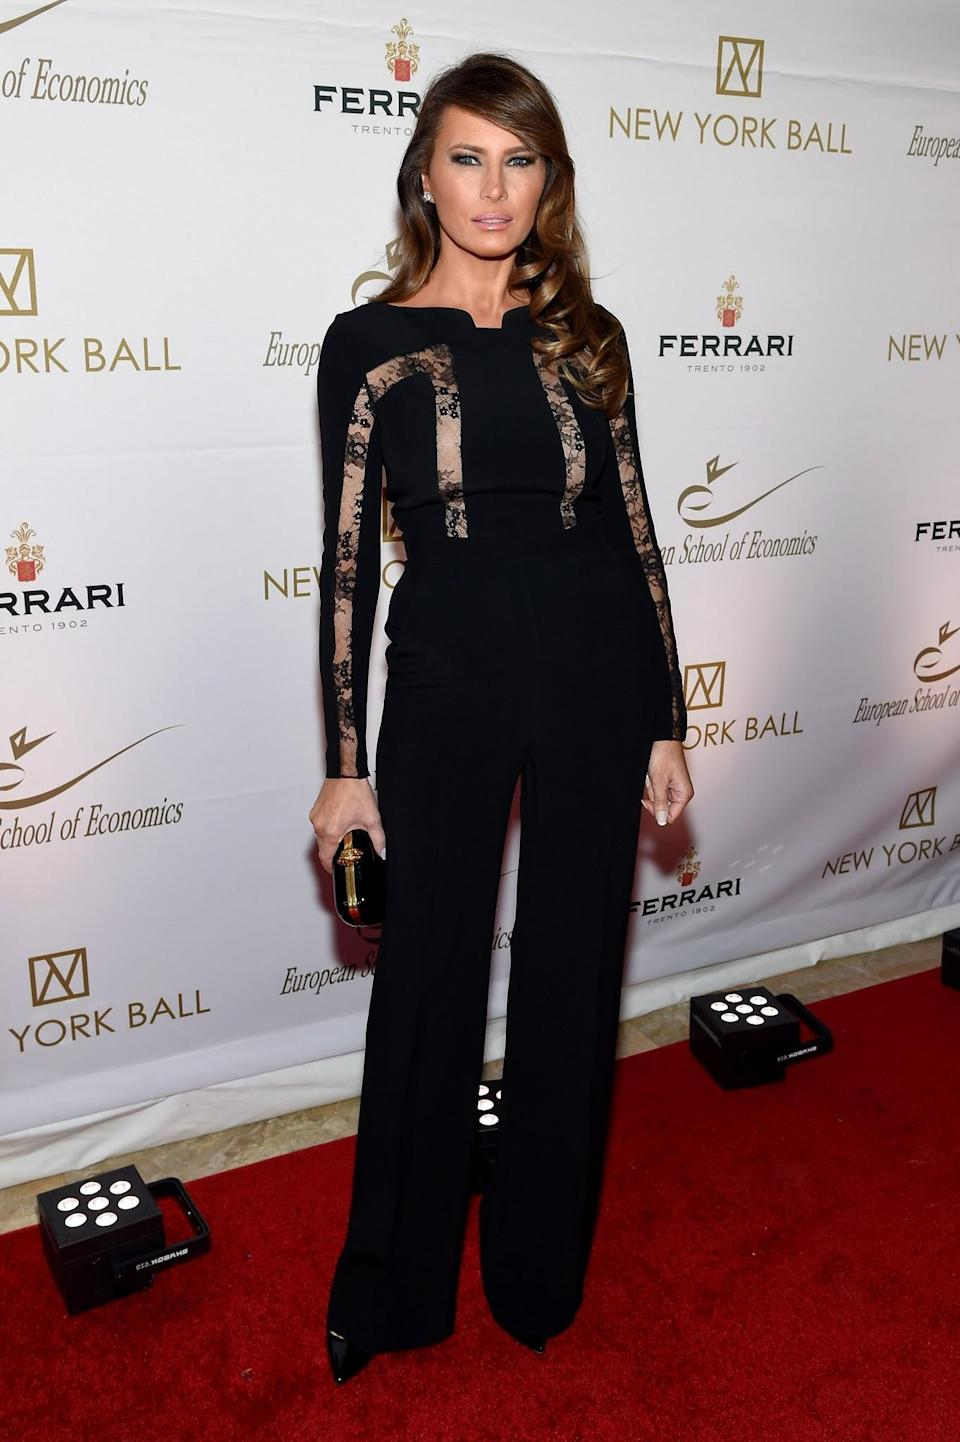 <p>For a charity ball, Melania chose a sleek black jumpsuit with sheer lace patches. She paired the tailored look with sleek heels and a black box clutch. <i>[Photo: Getty]</i> </p>